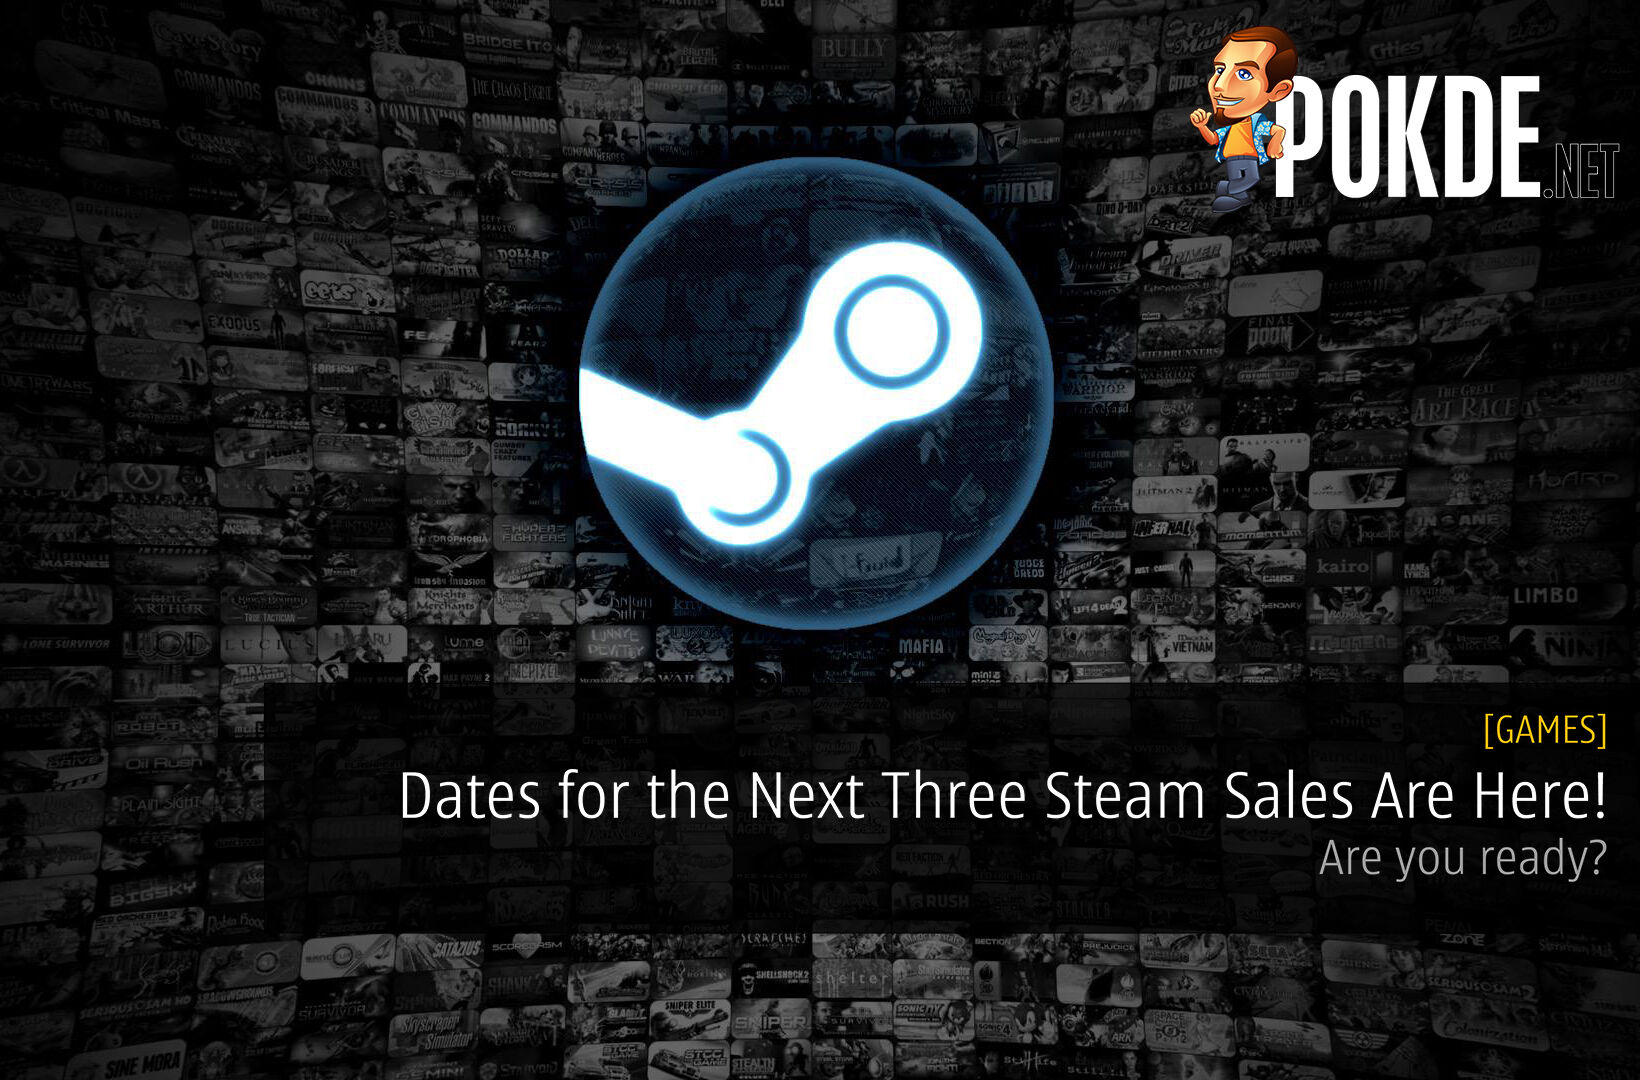 The Dates for the Next Three Steam Sales Are Here! - Are you ready? 41